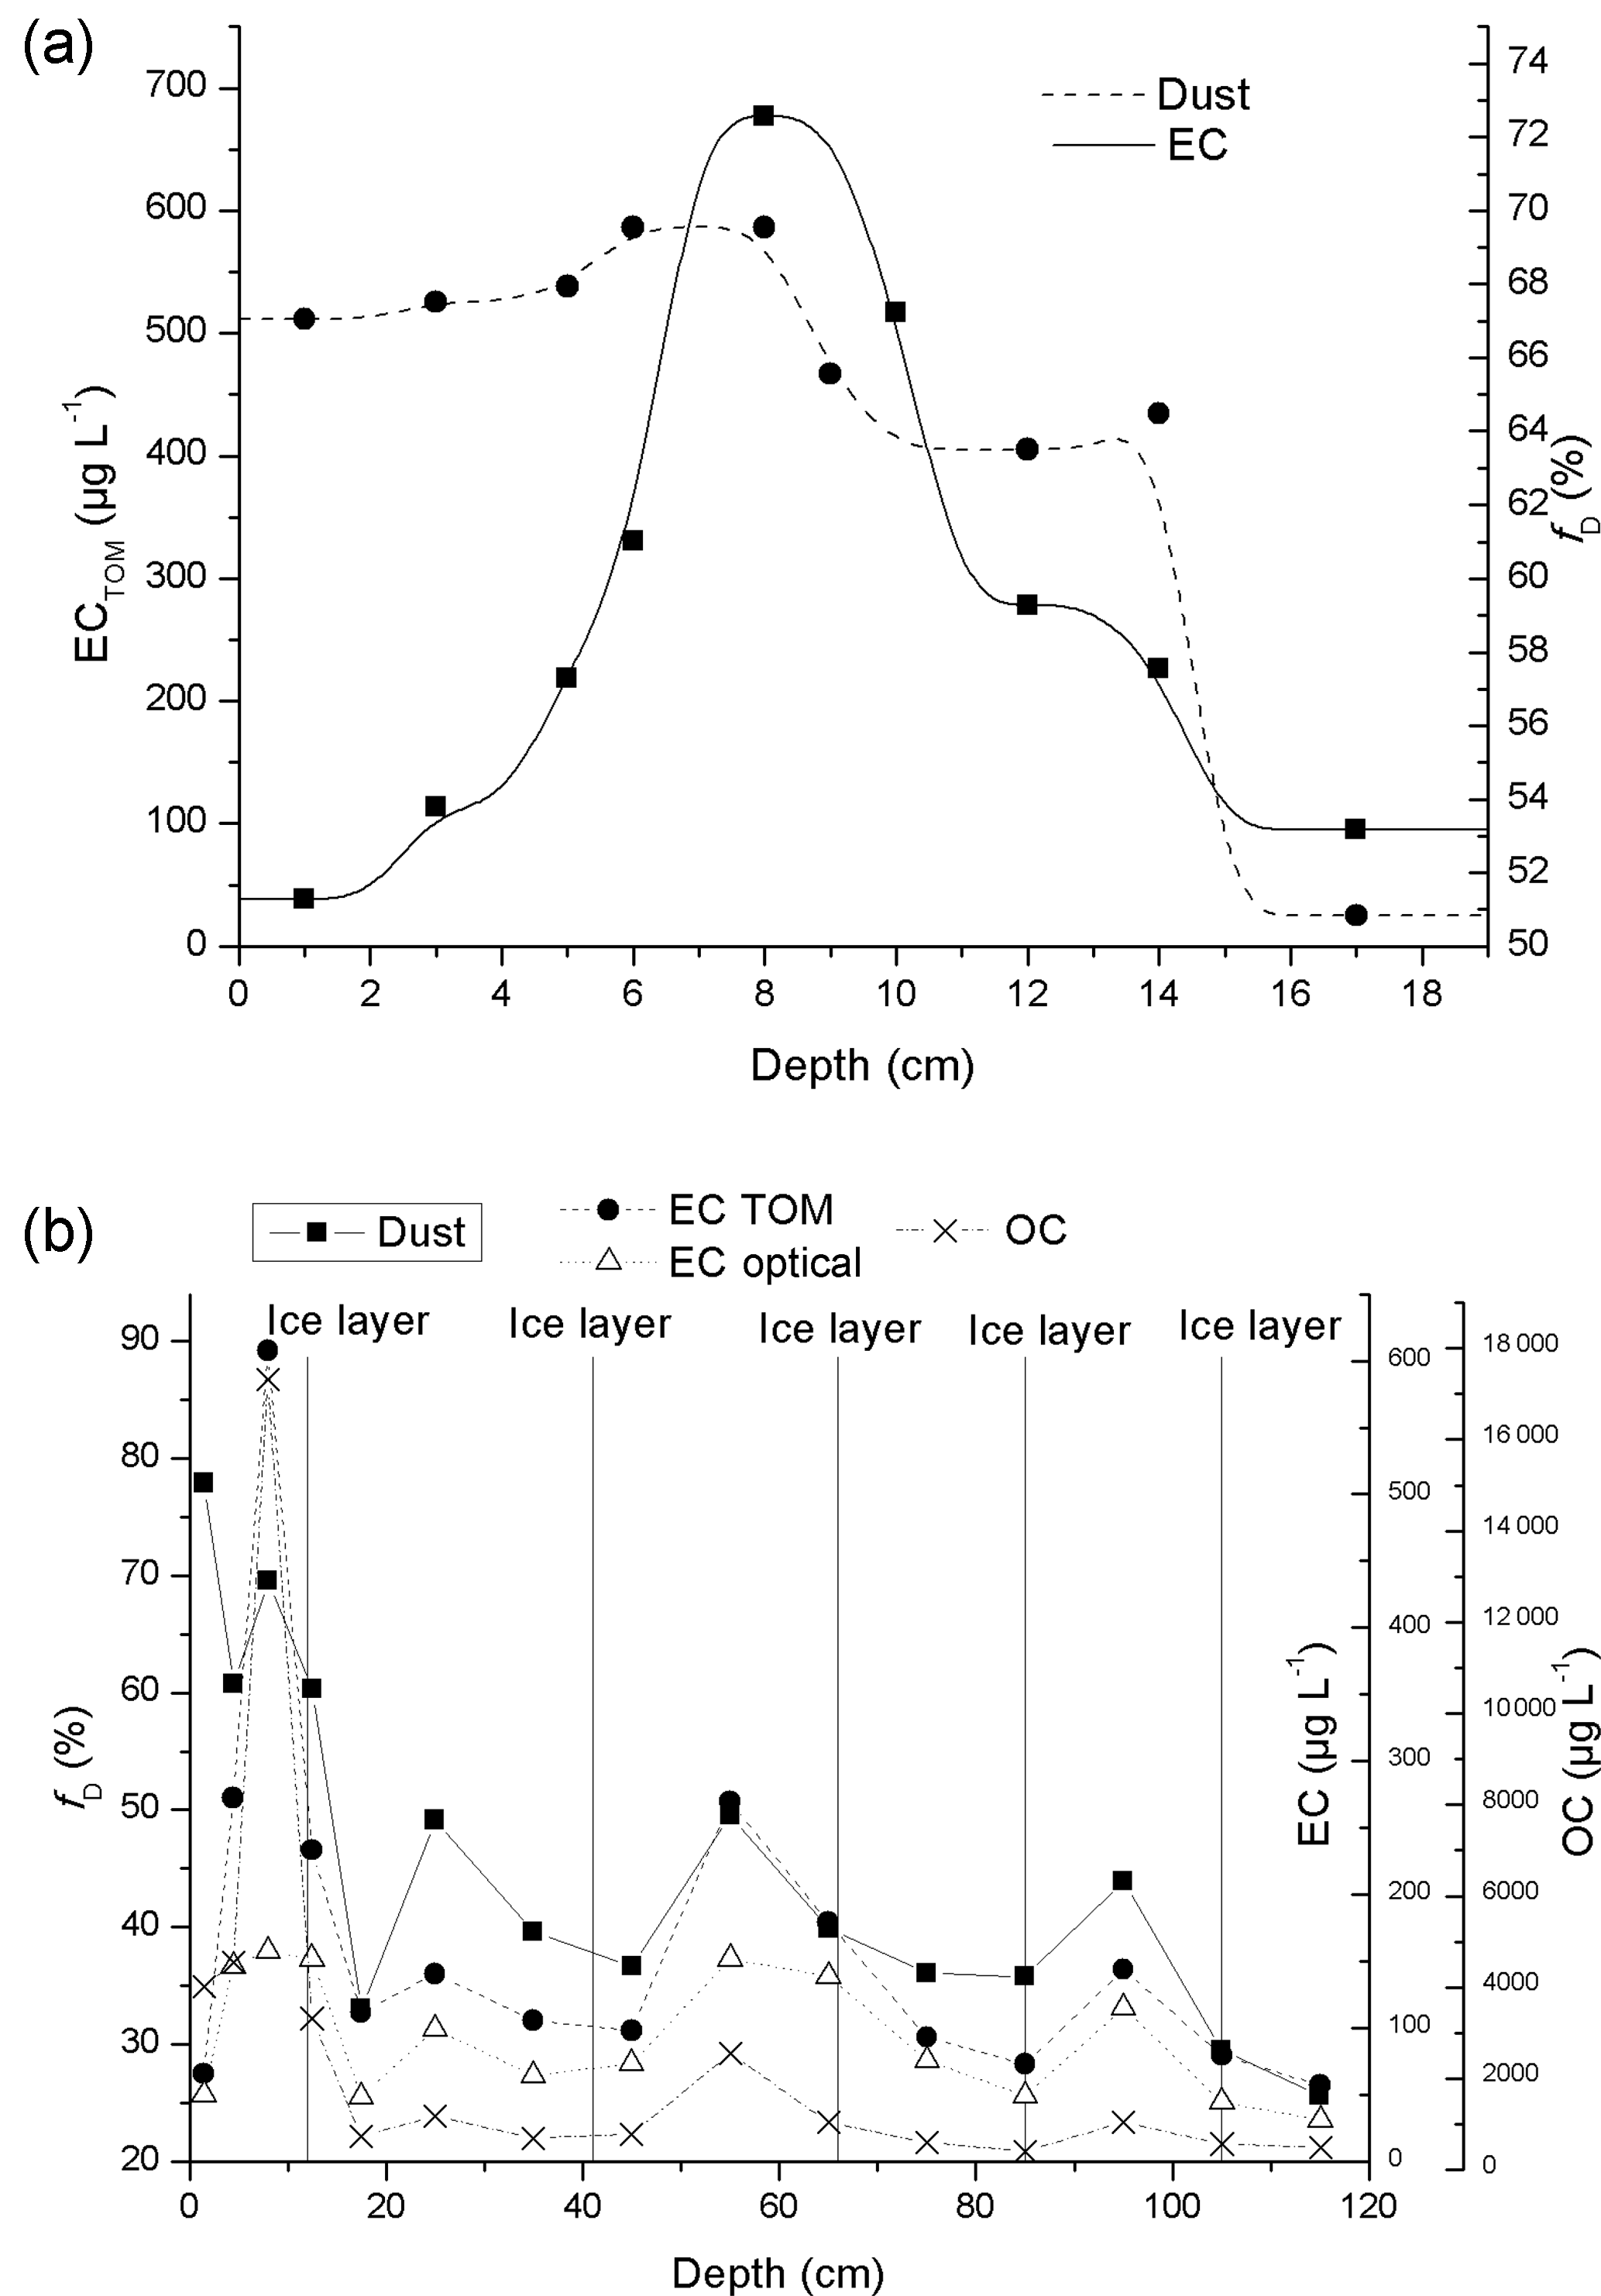 AMT - Light-absorption of dust and elemental carbon in snow